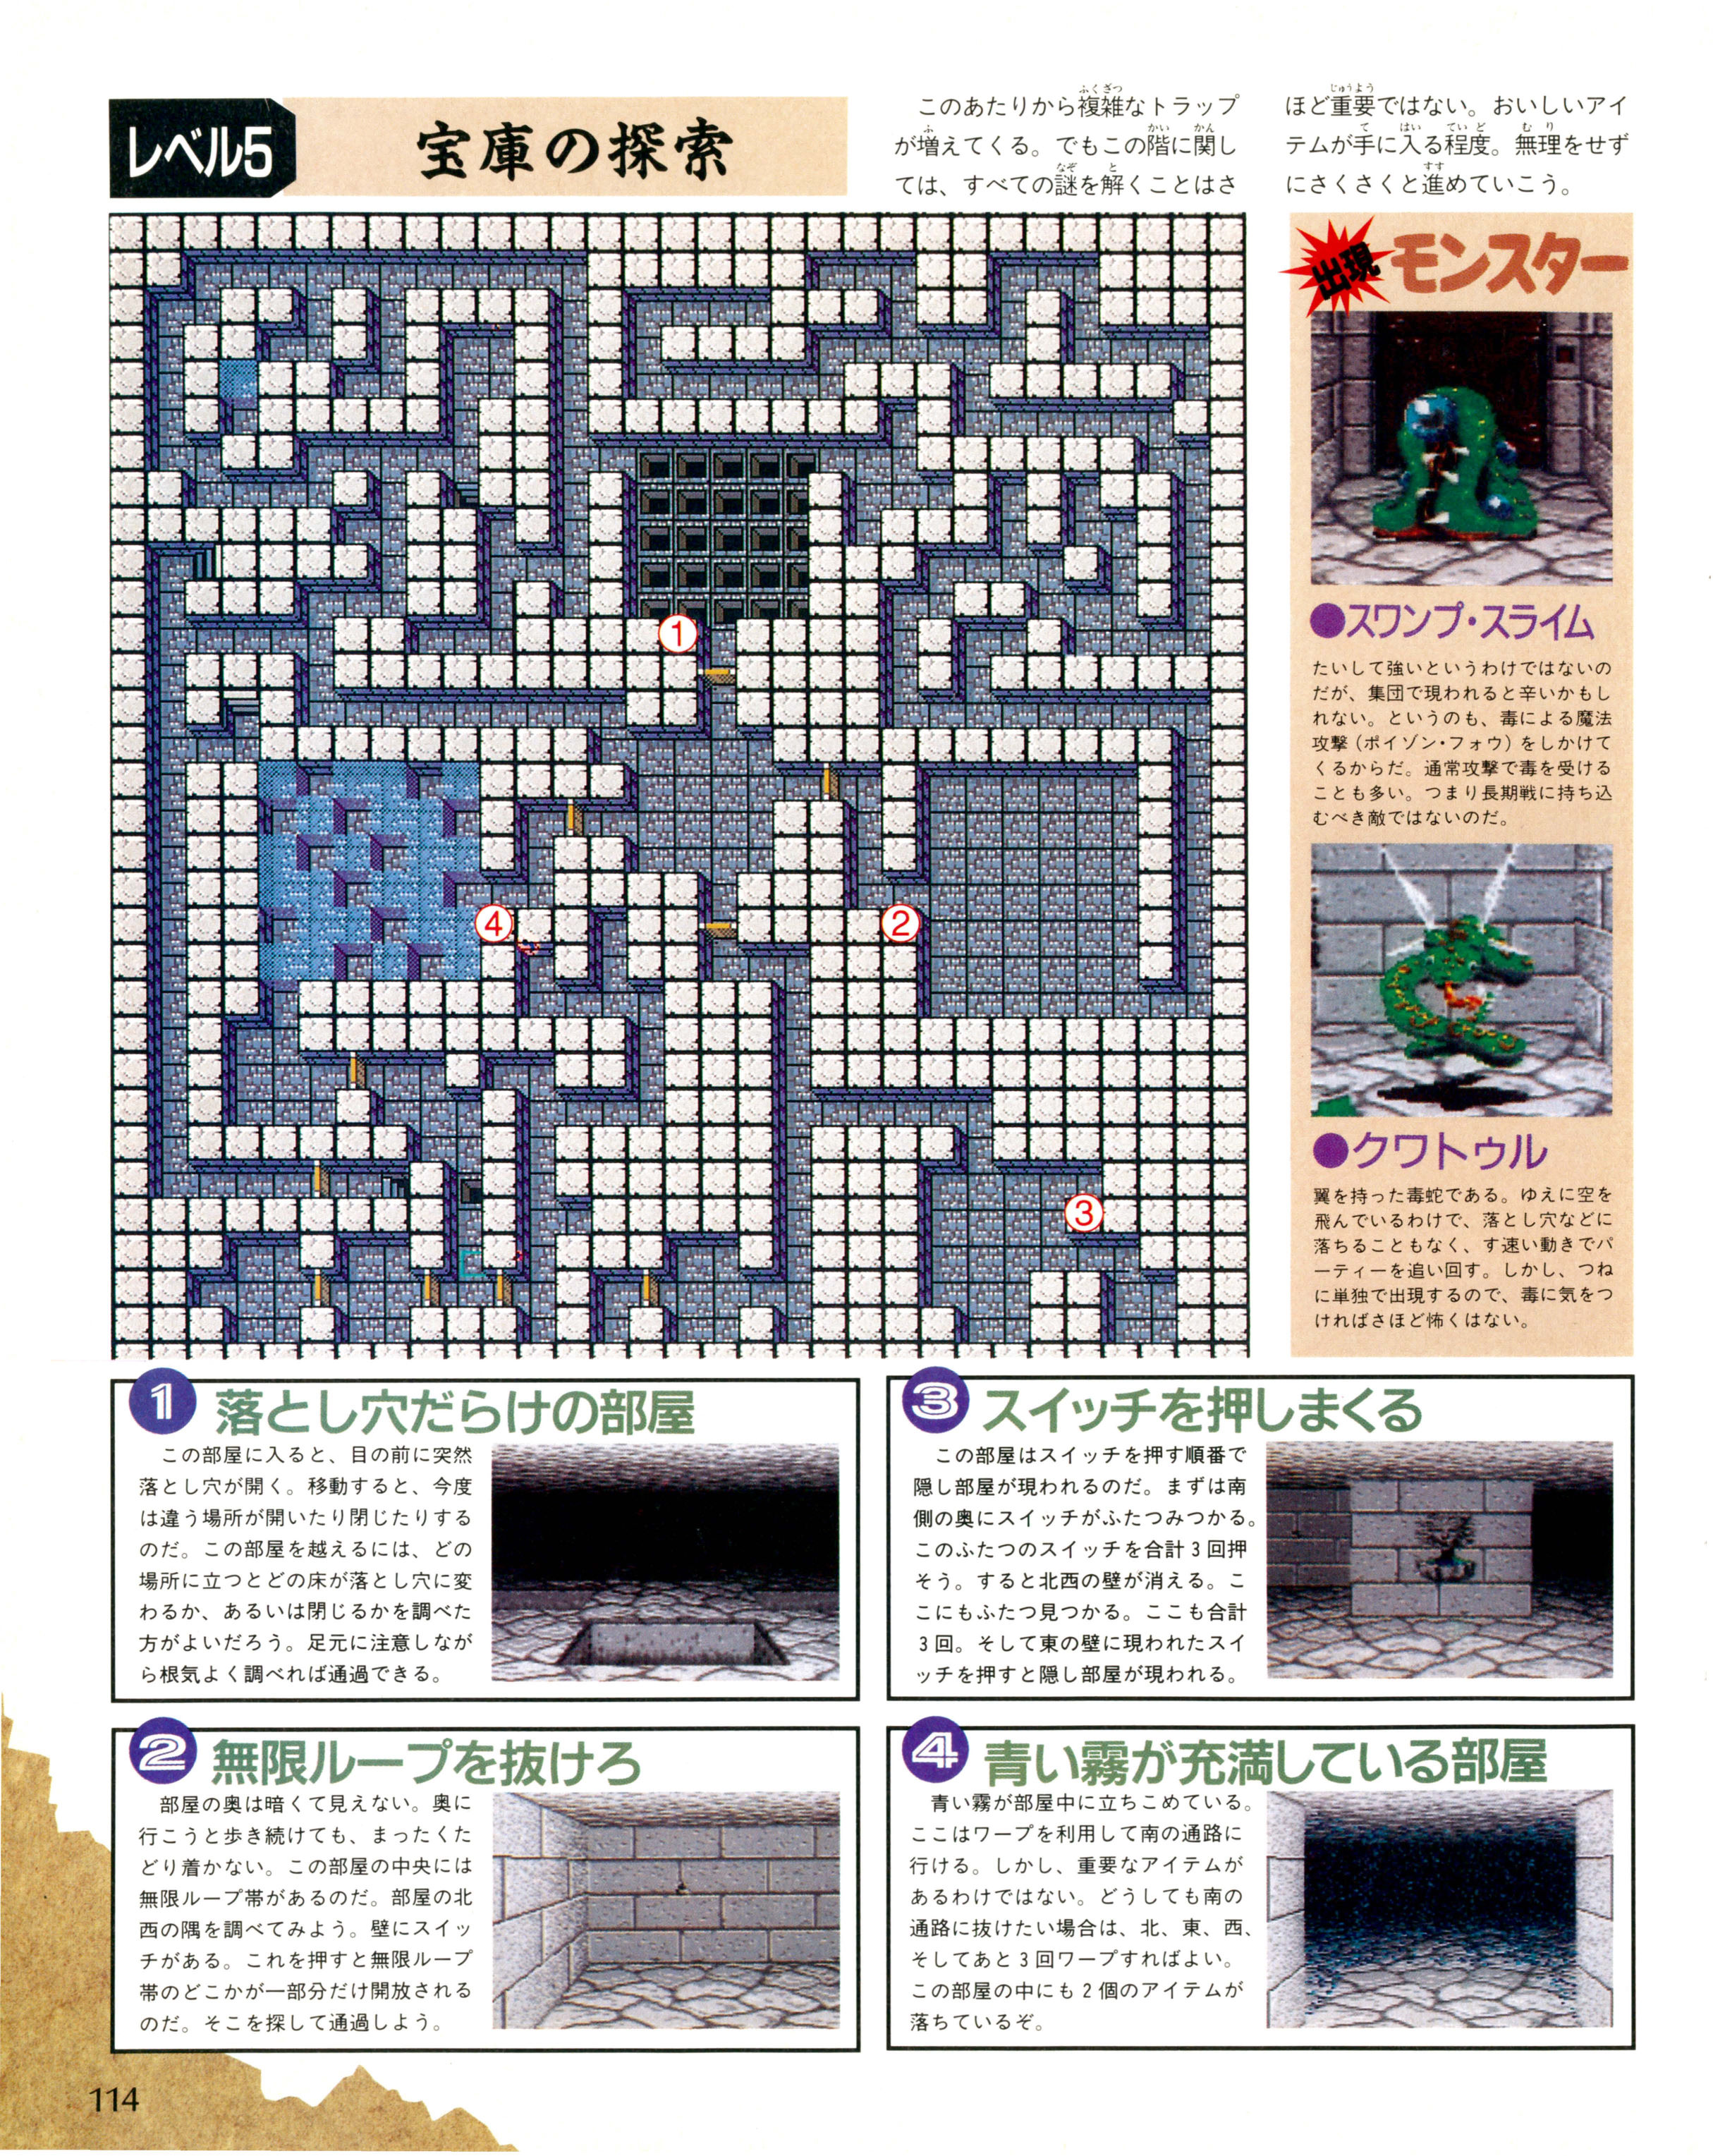 Dungeon Master for Super Famicom Guide published in Japanese magazine 'Famitsu', Issue #159 03 January 1992, Page 114